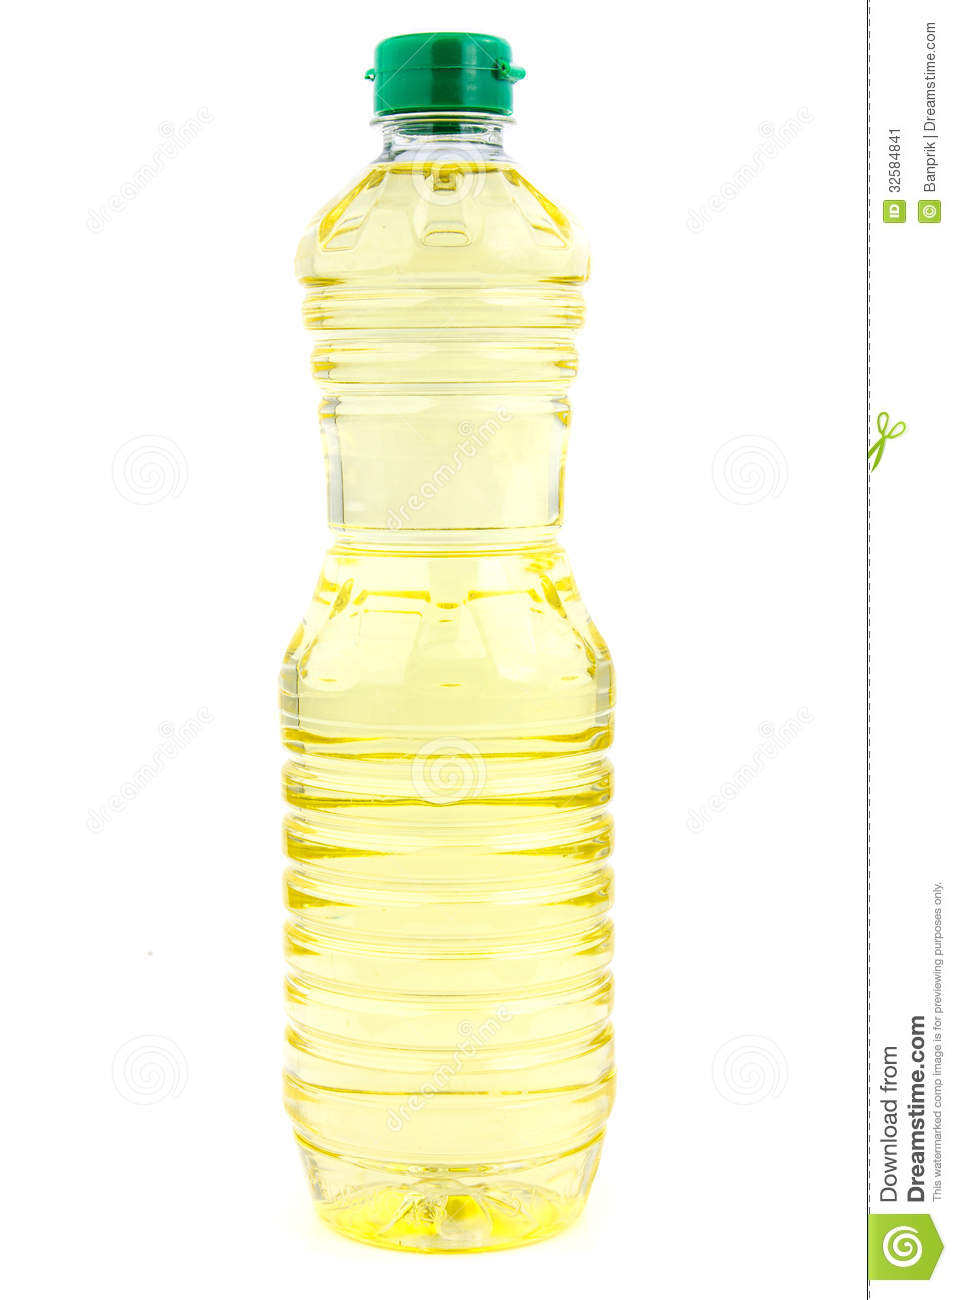 Vegetable Oil In Plastic Bottle Stock Image Image 32584841